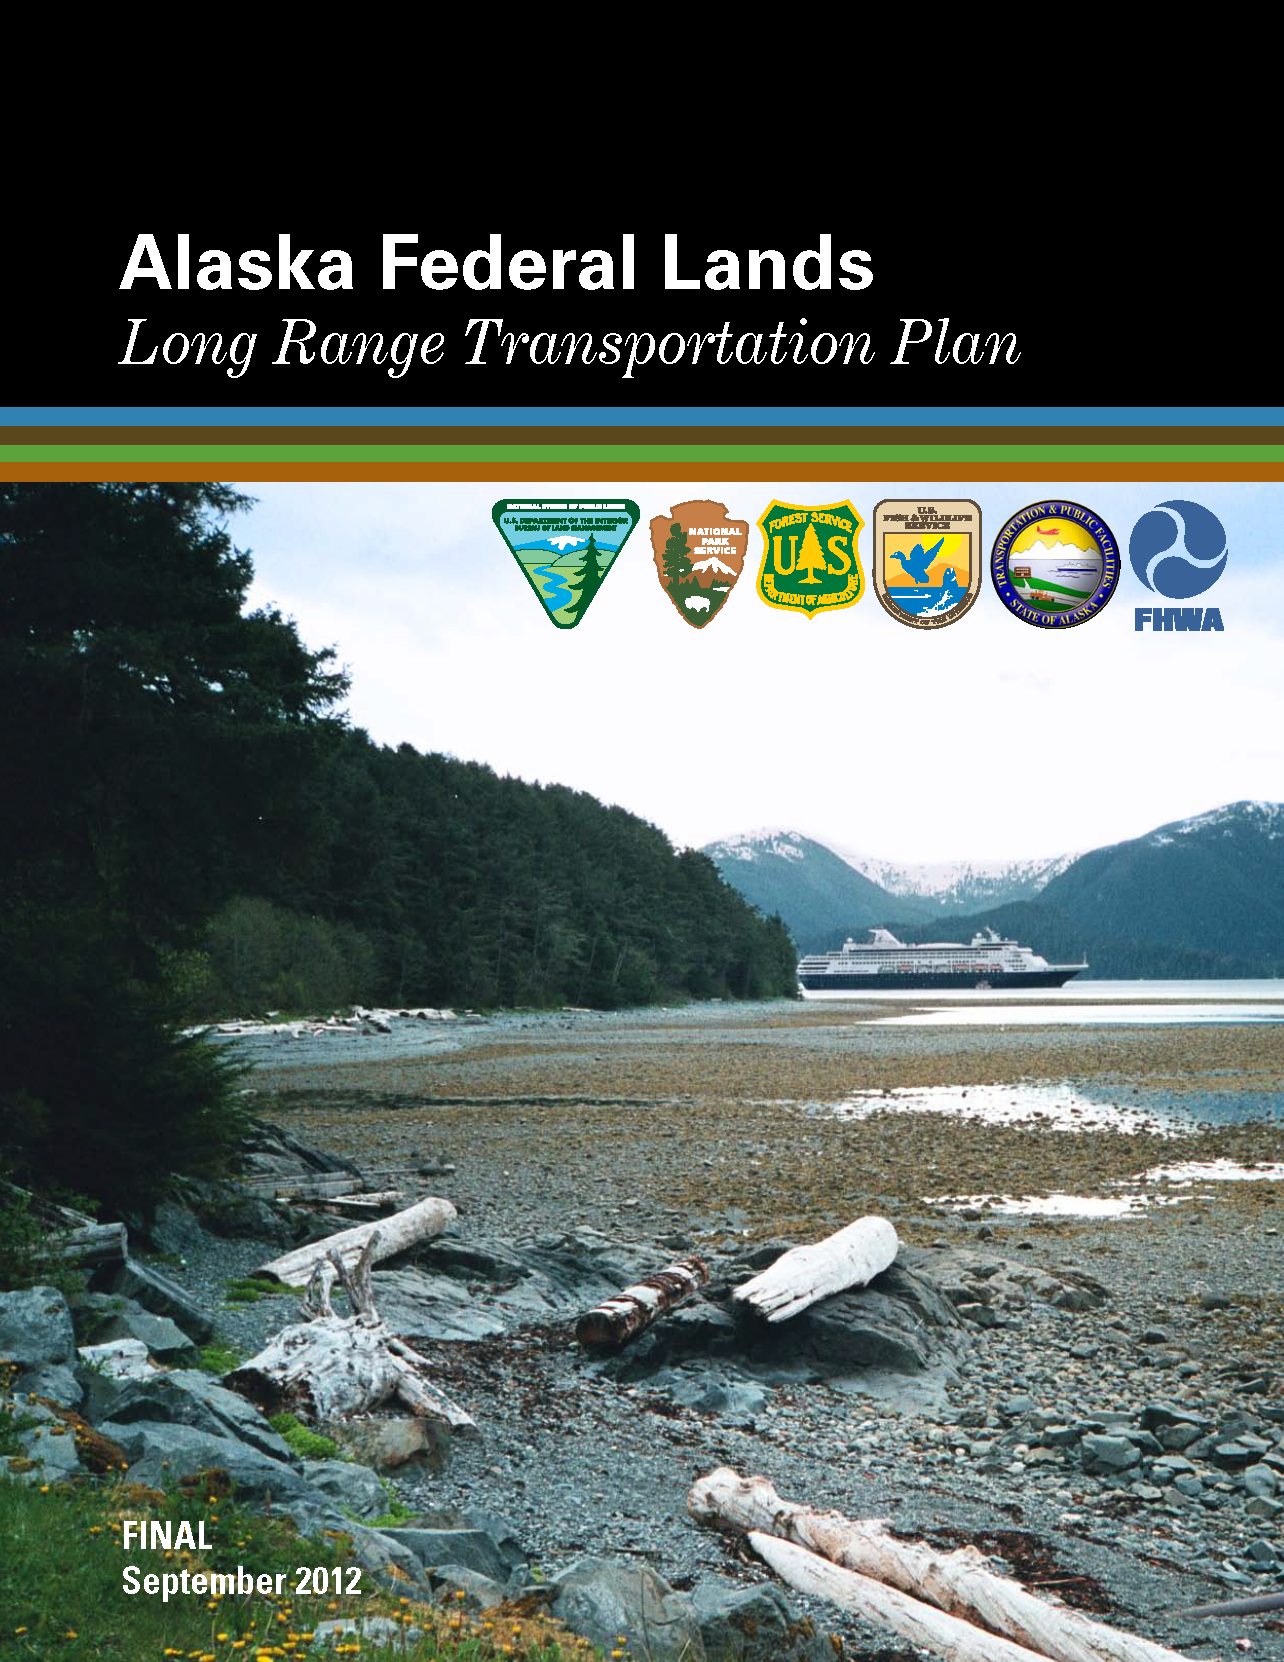 Image of a document cover with logos of different FLMAs and a mountainous scene.